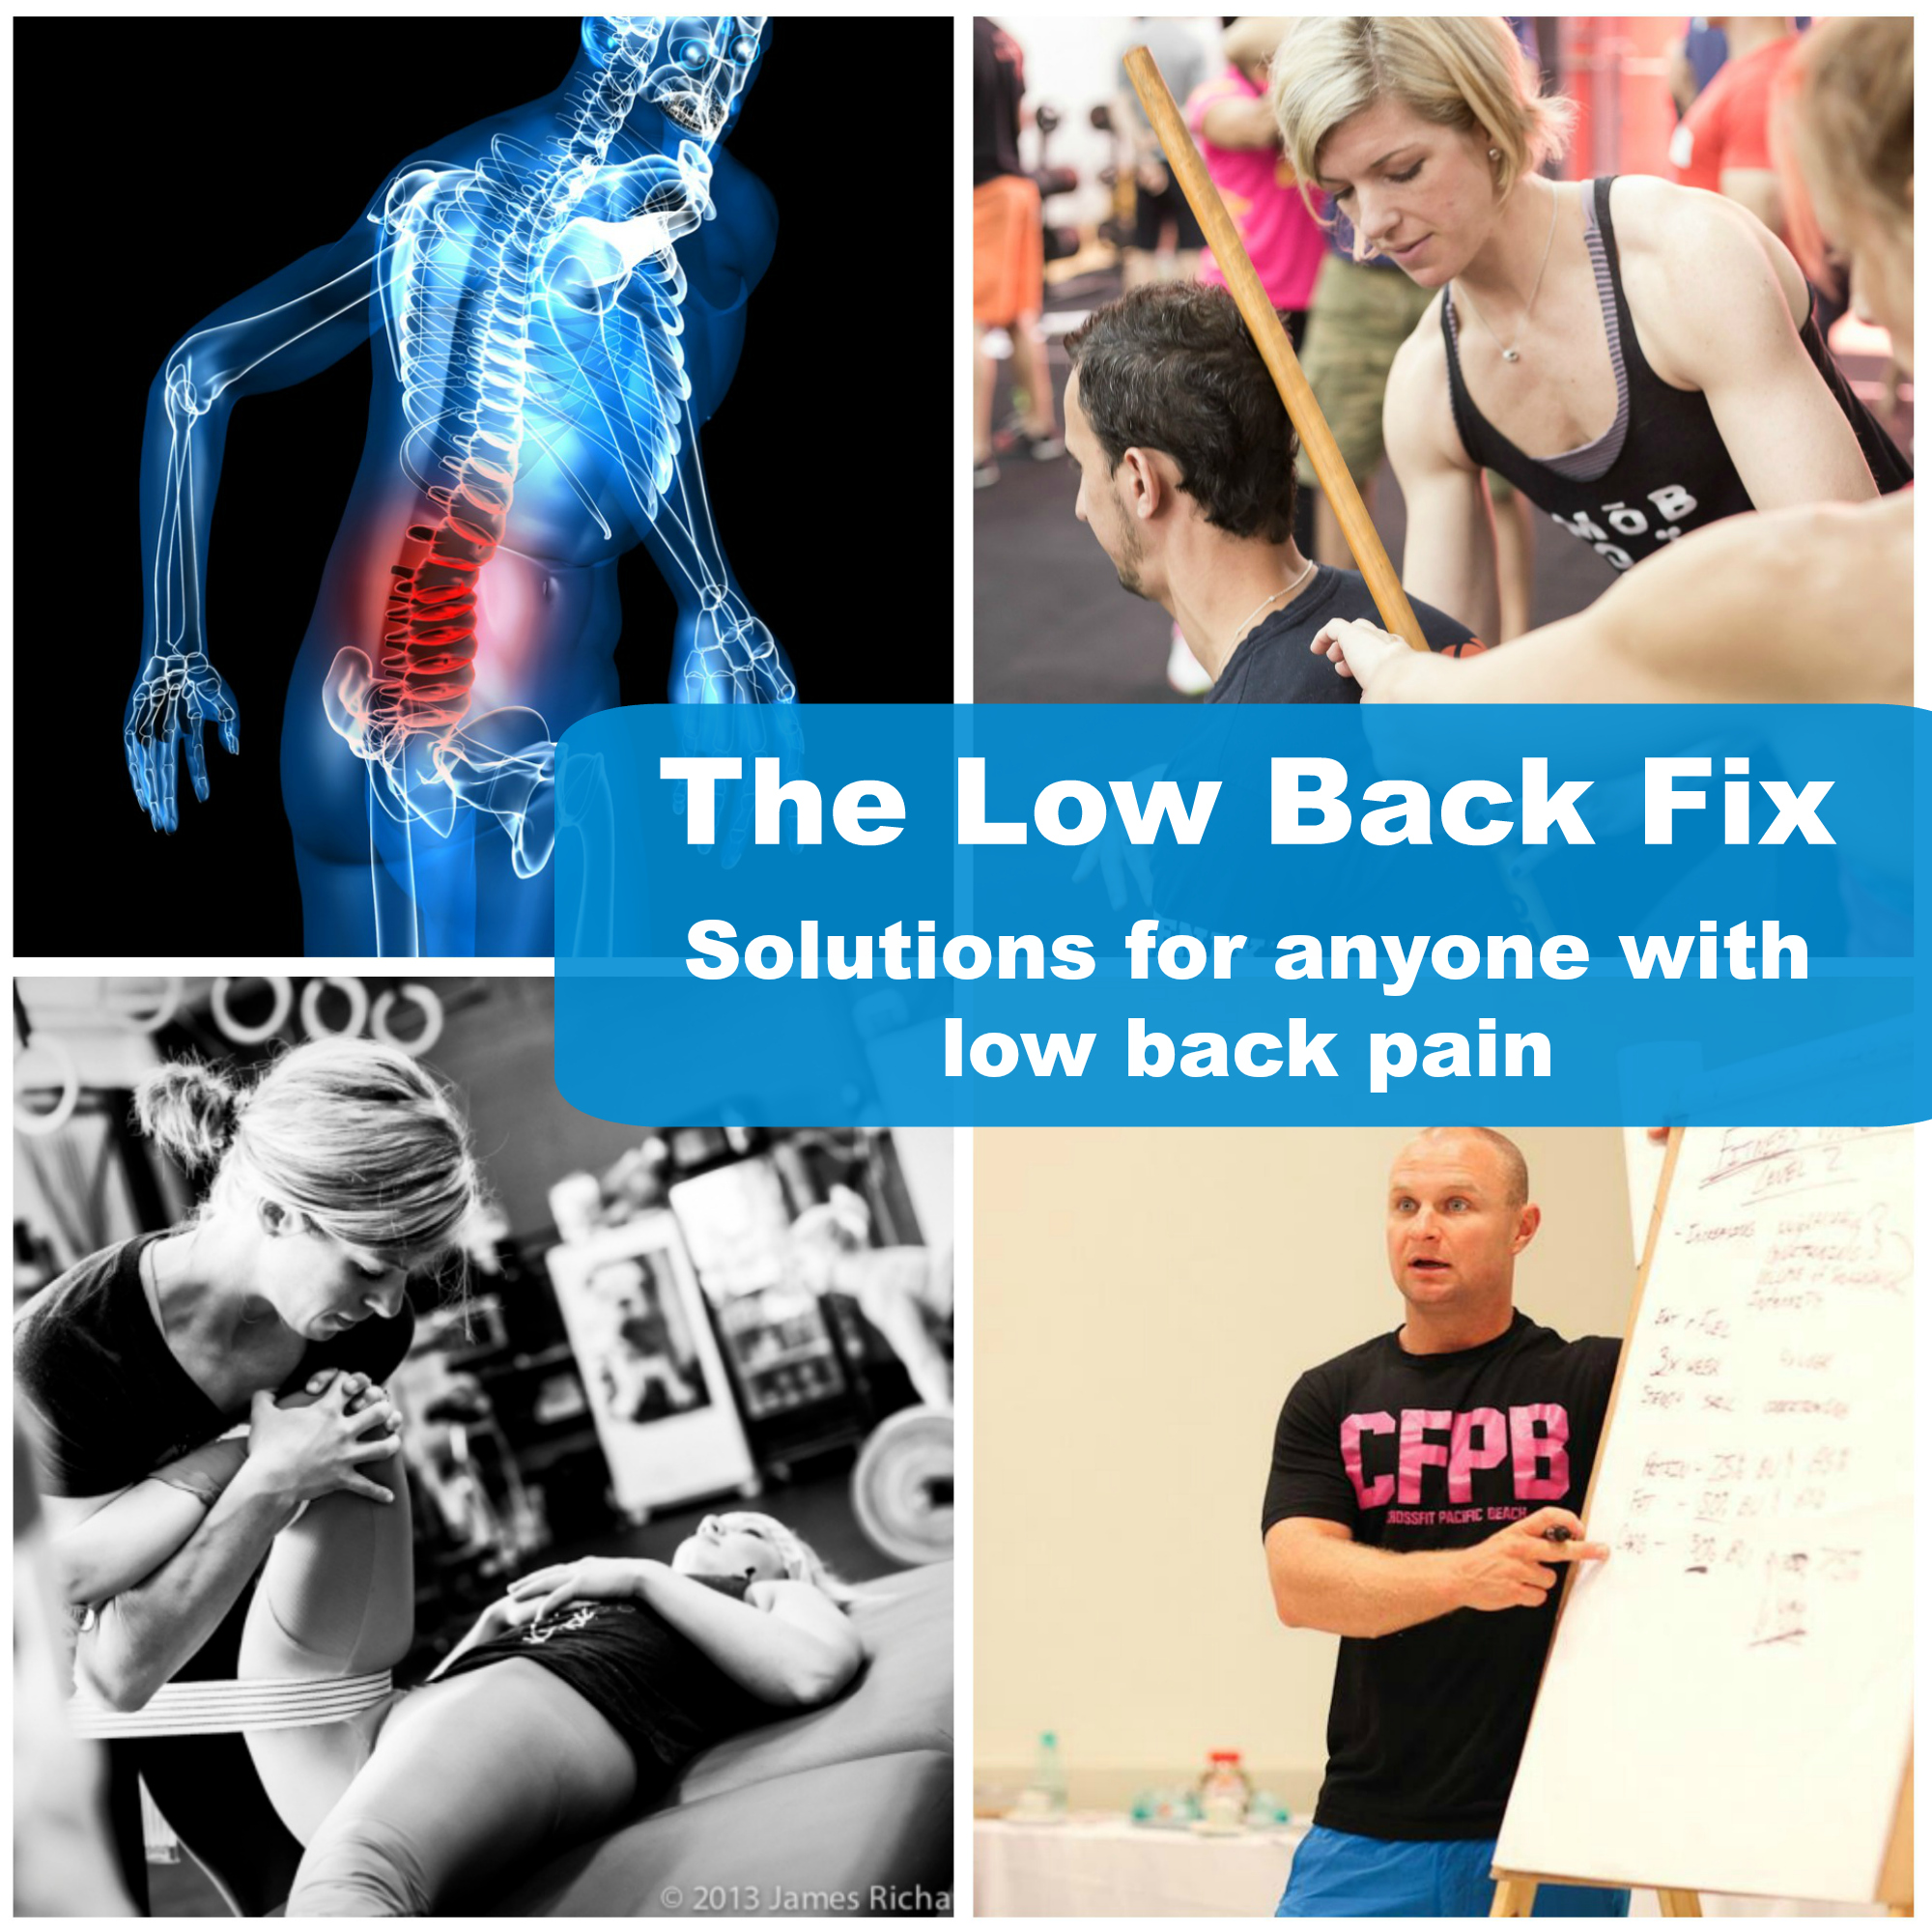 about low back fix